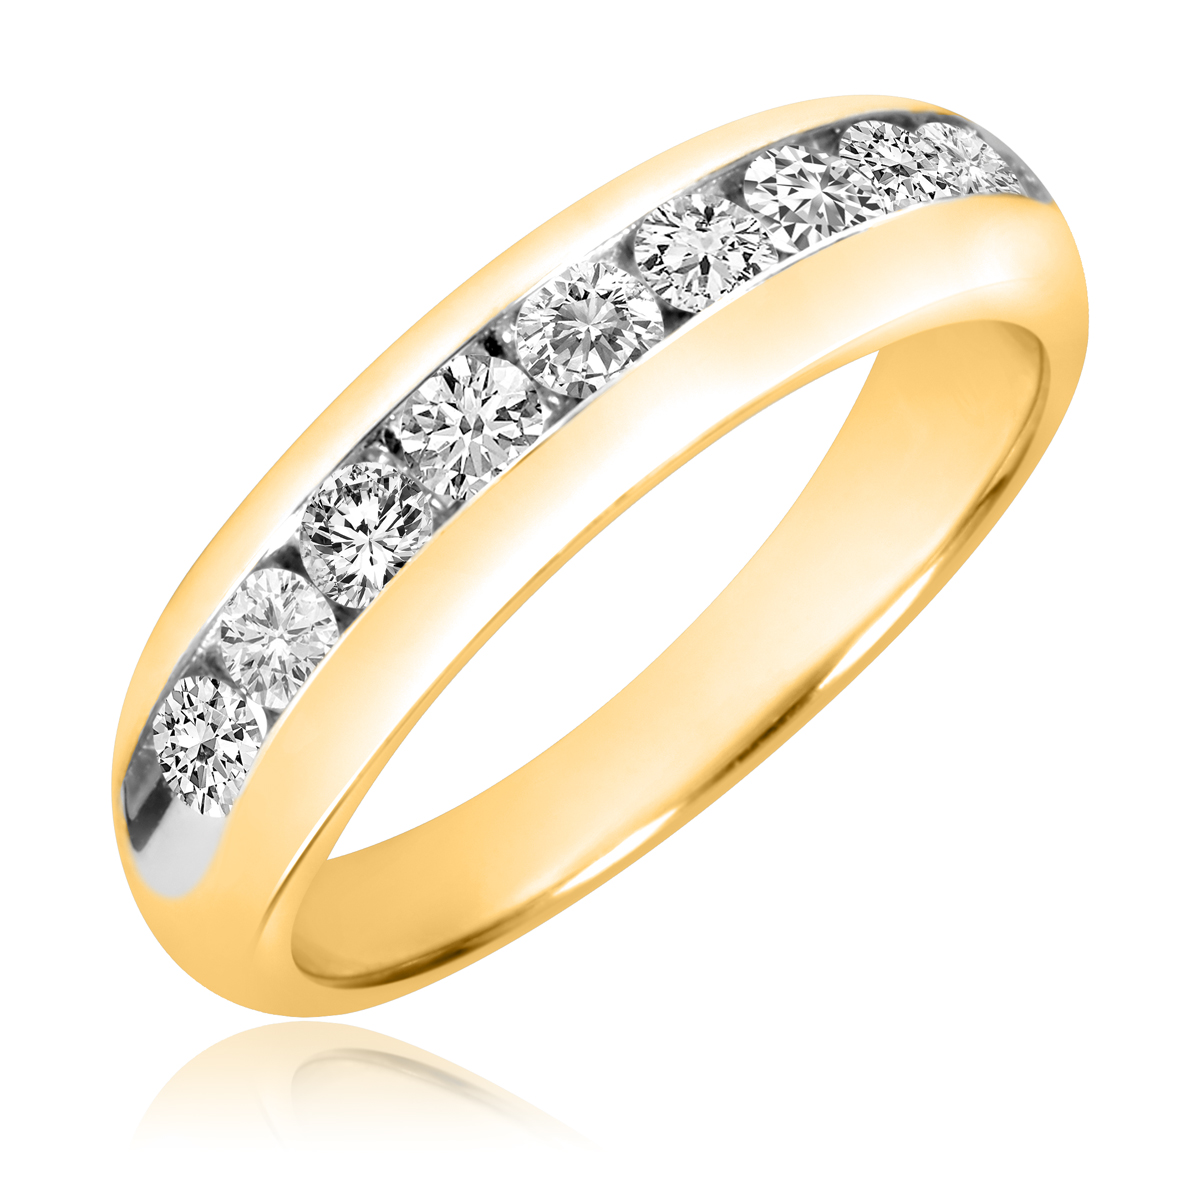 1 Carat T.W. Round Cut Diamond Men's Wedding Band 14K Yellow Gold- Size 8